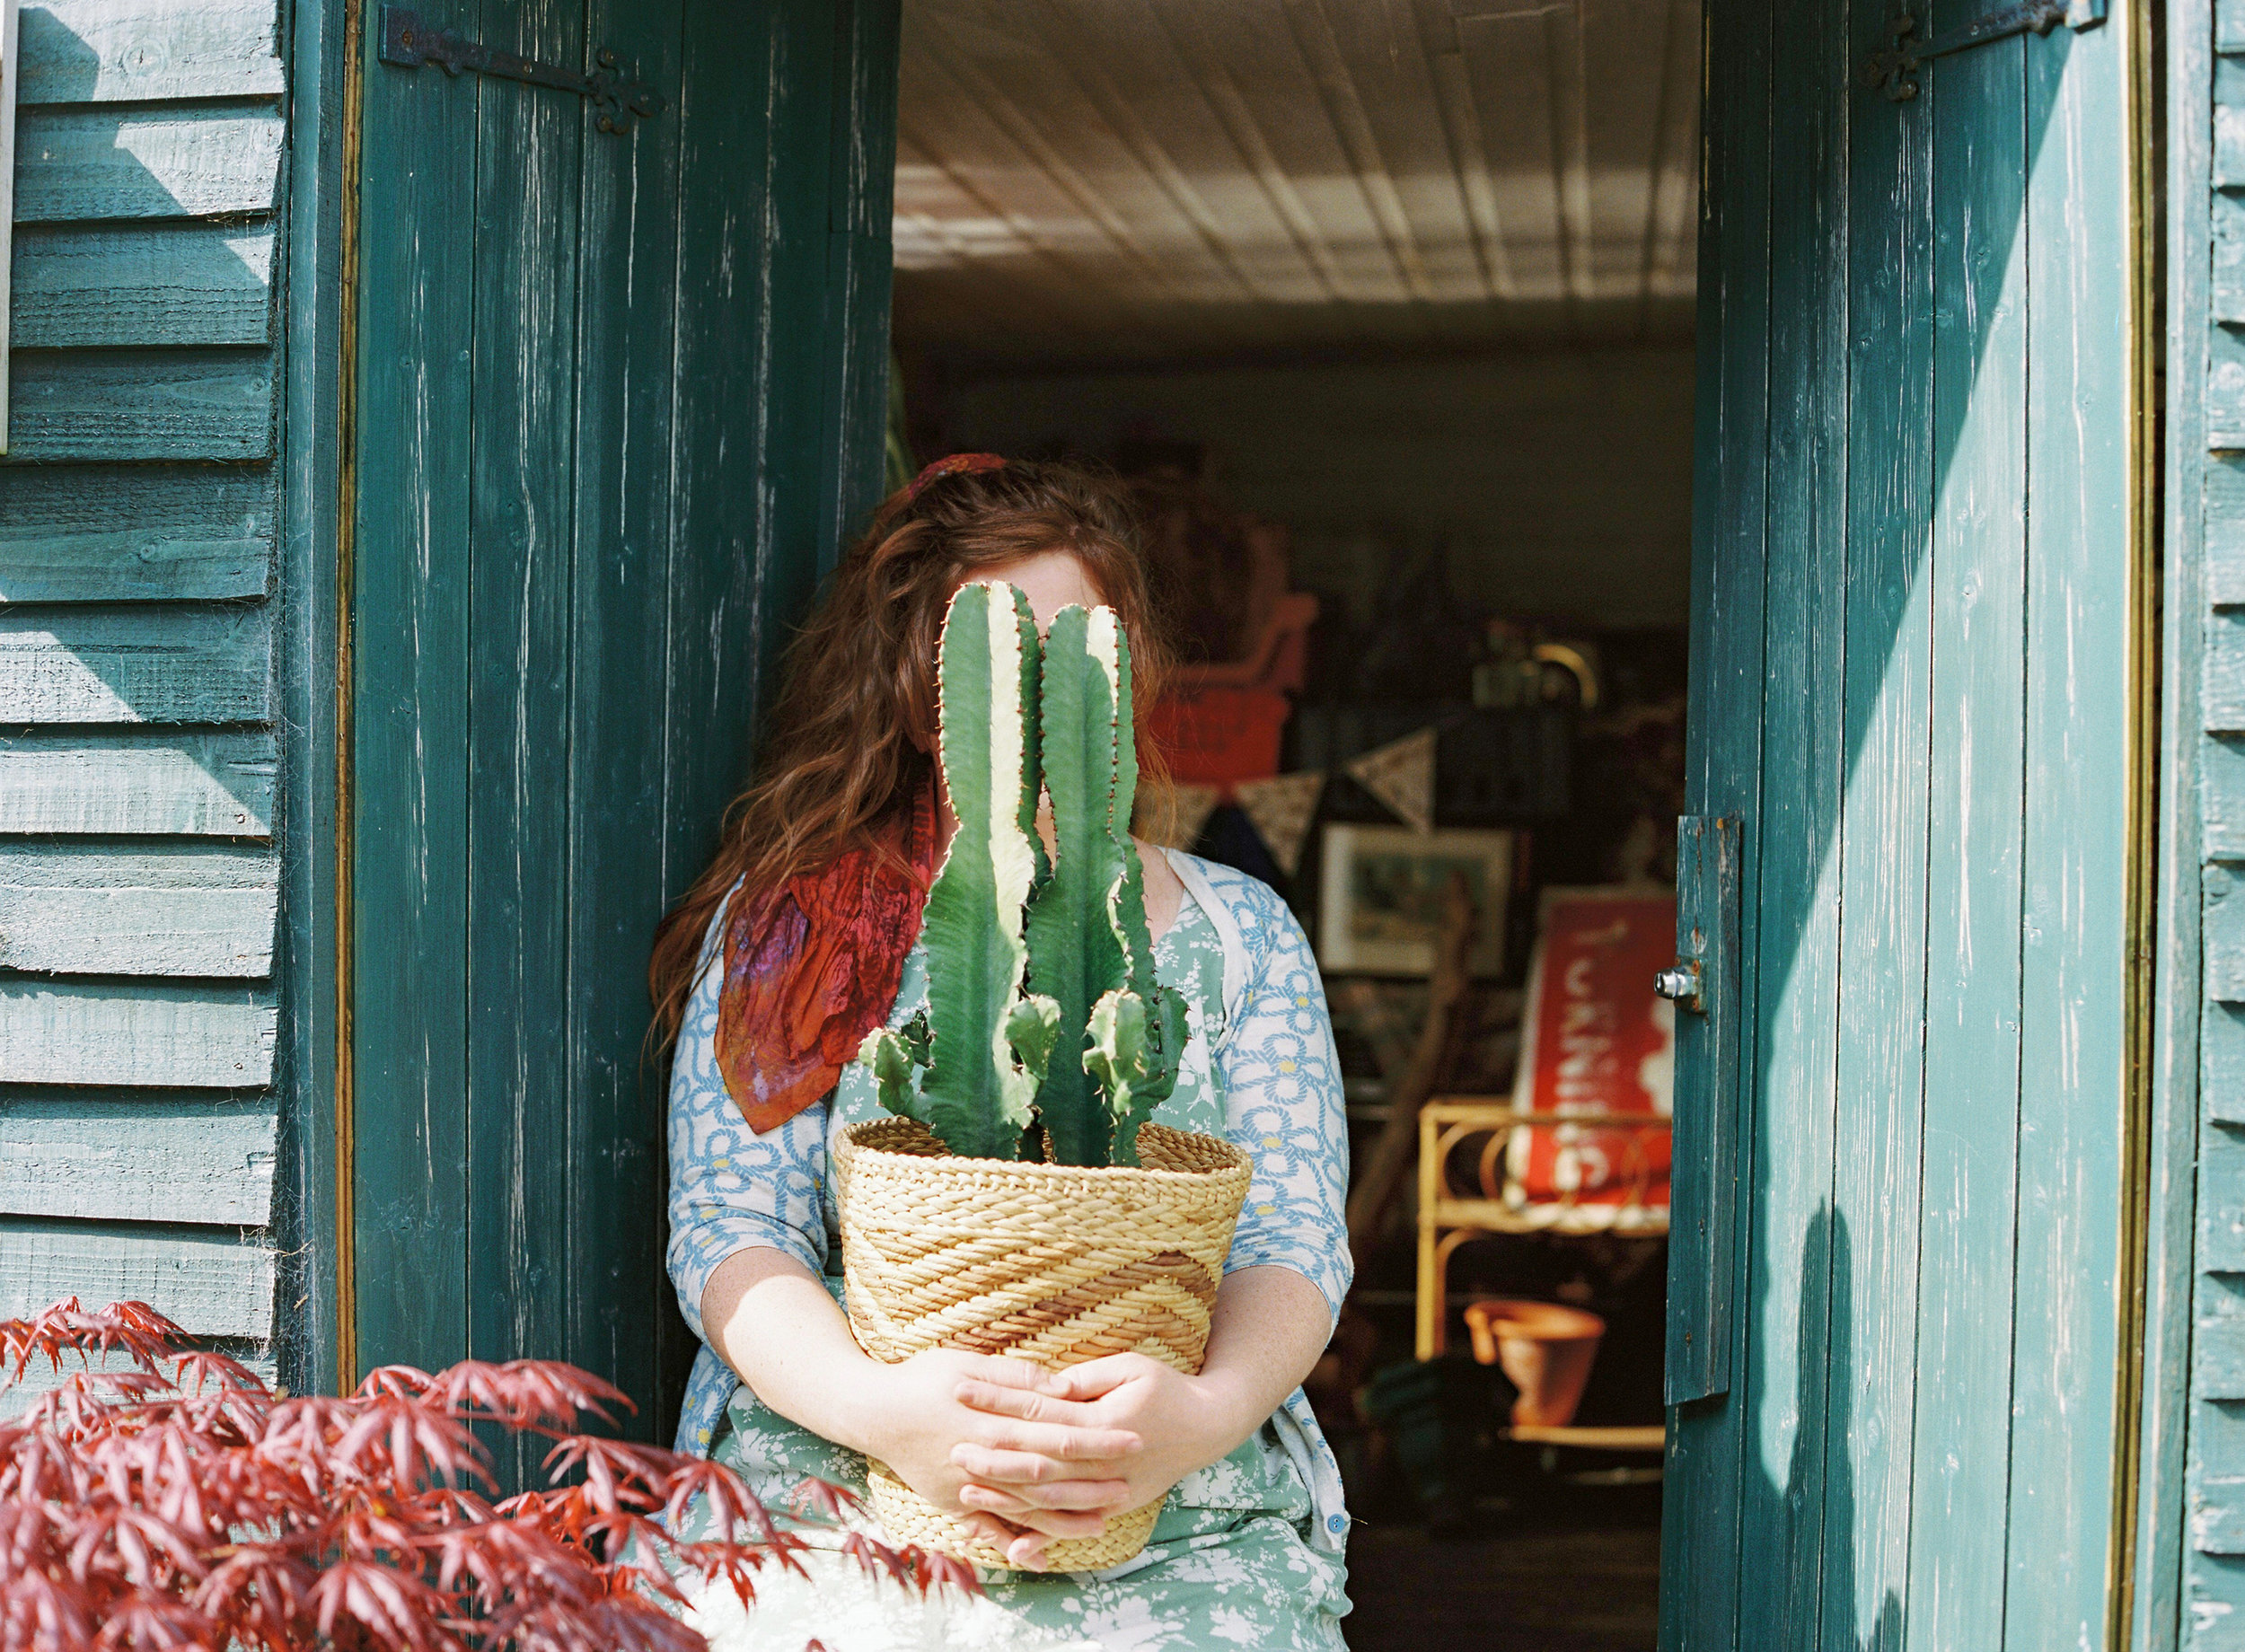 The Girl That Gardens | Cumbria - Alice is a very talented floral designer who has sustainability high on her priorities. She calls her style 'romantic hedgerow'.